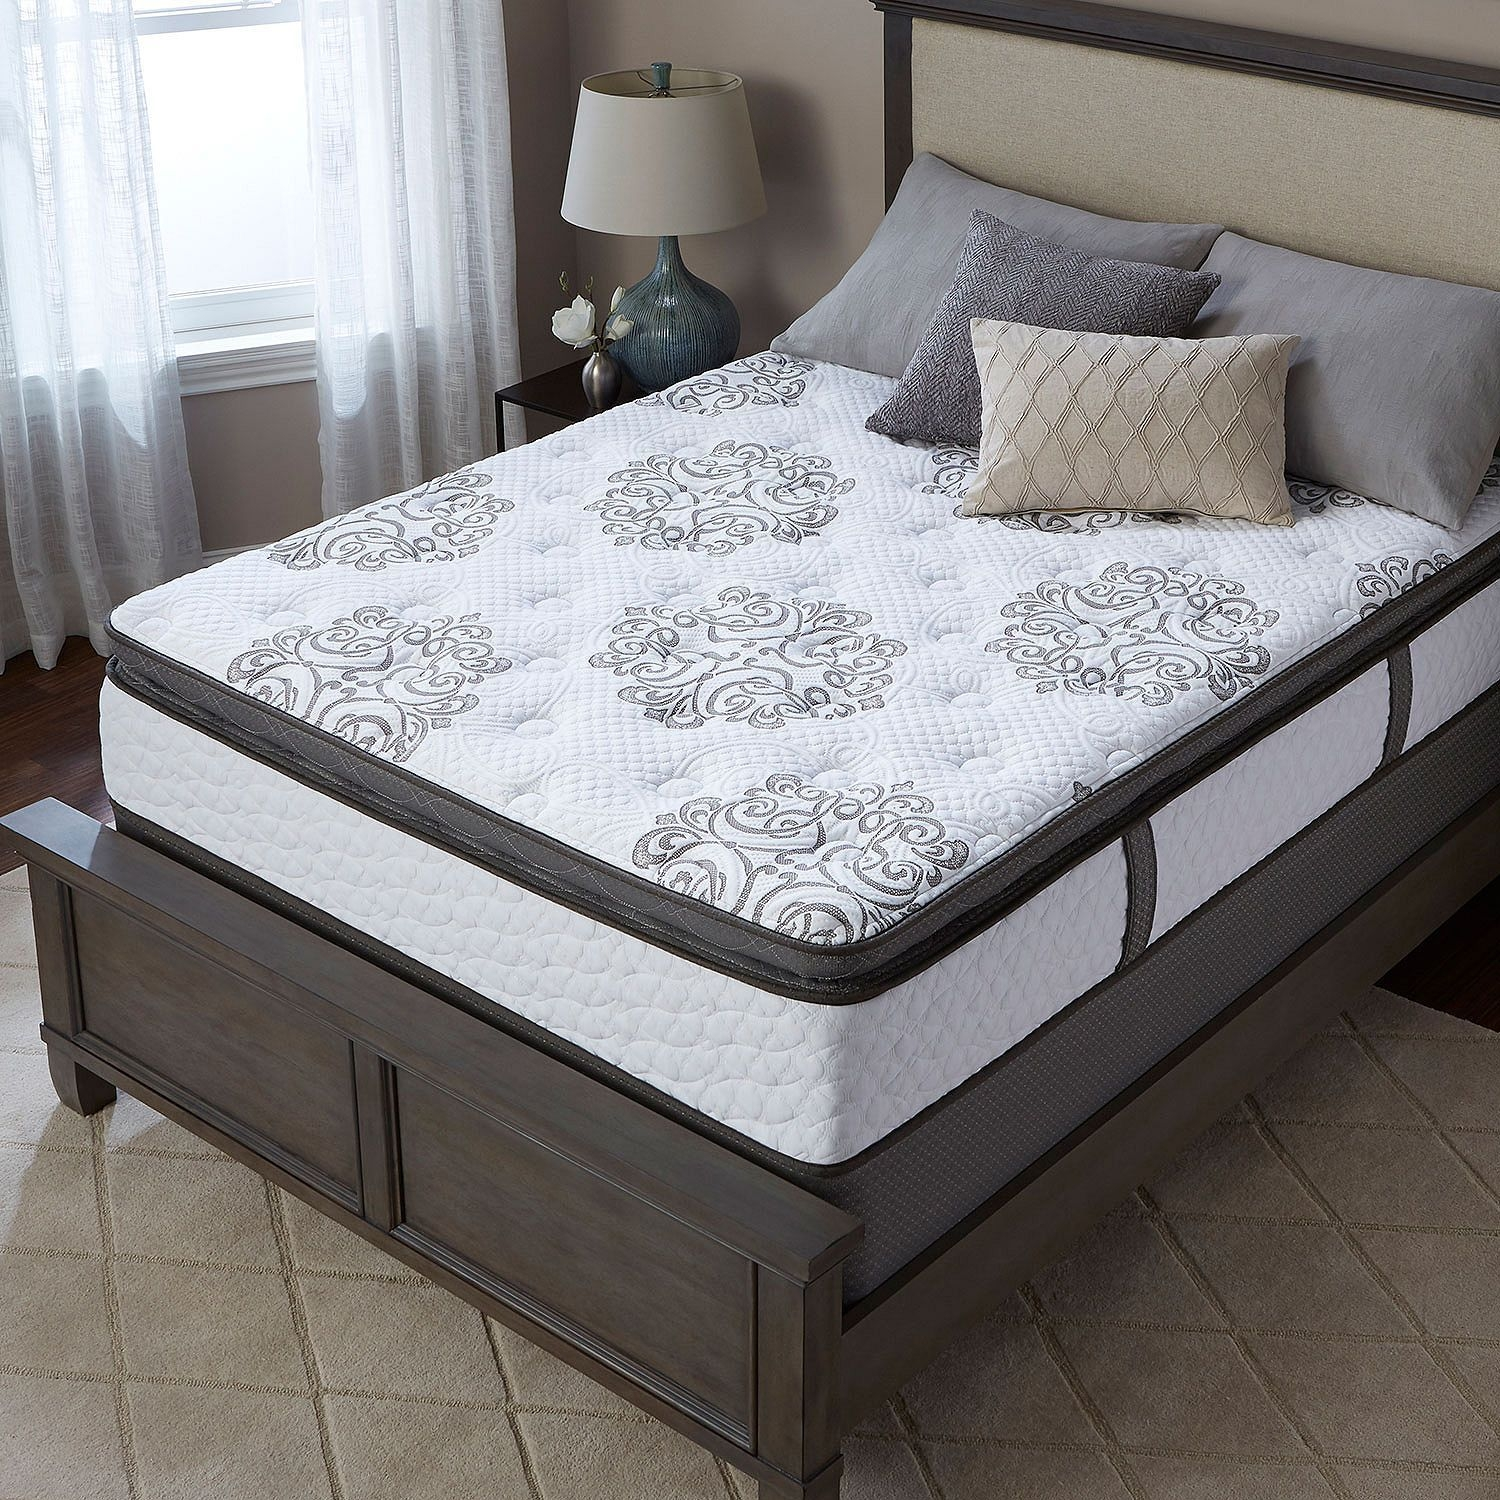 69800 Serta Perfect Sleeper Hillgate Ii Cushion Firm Super Pillowtop California King Mattress